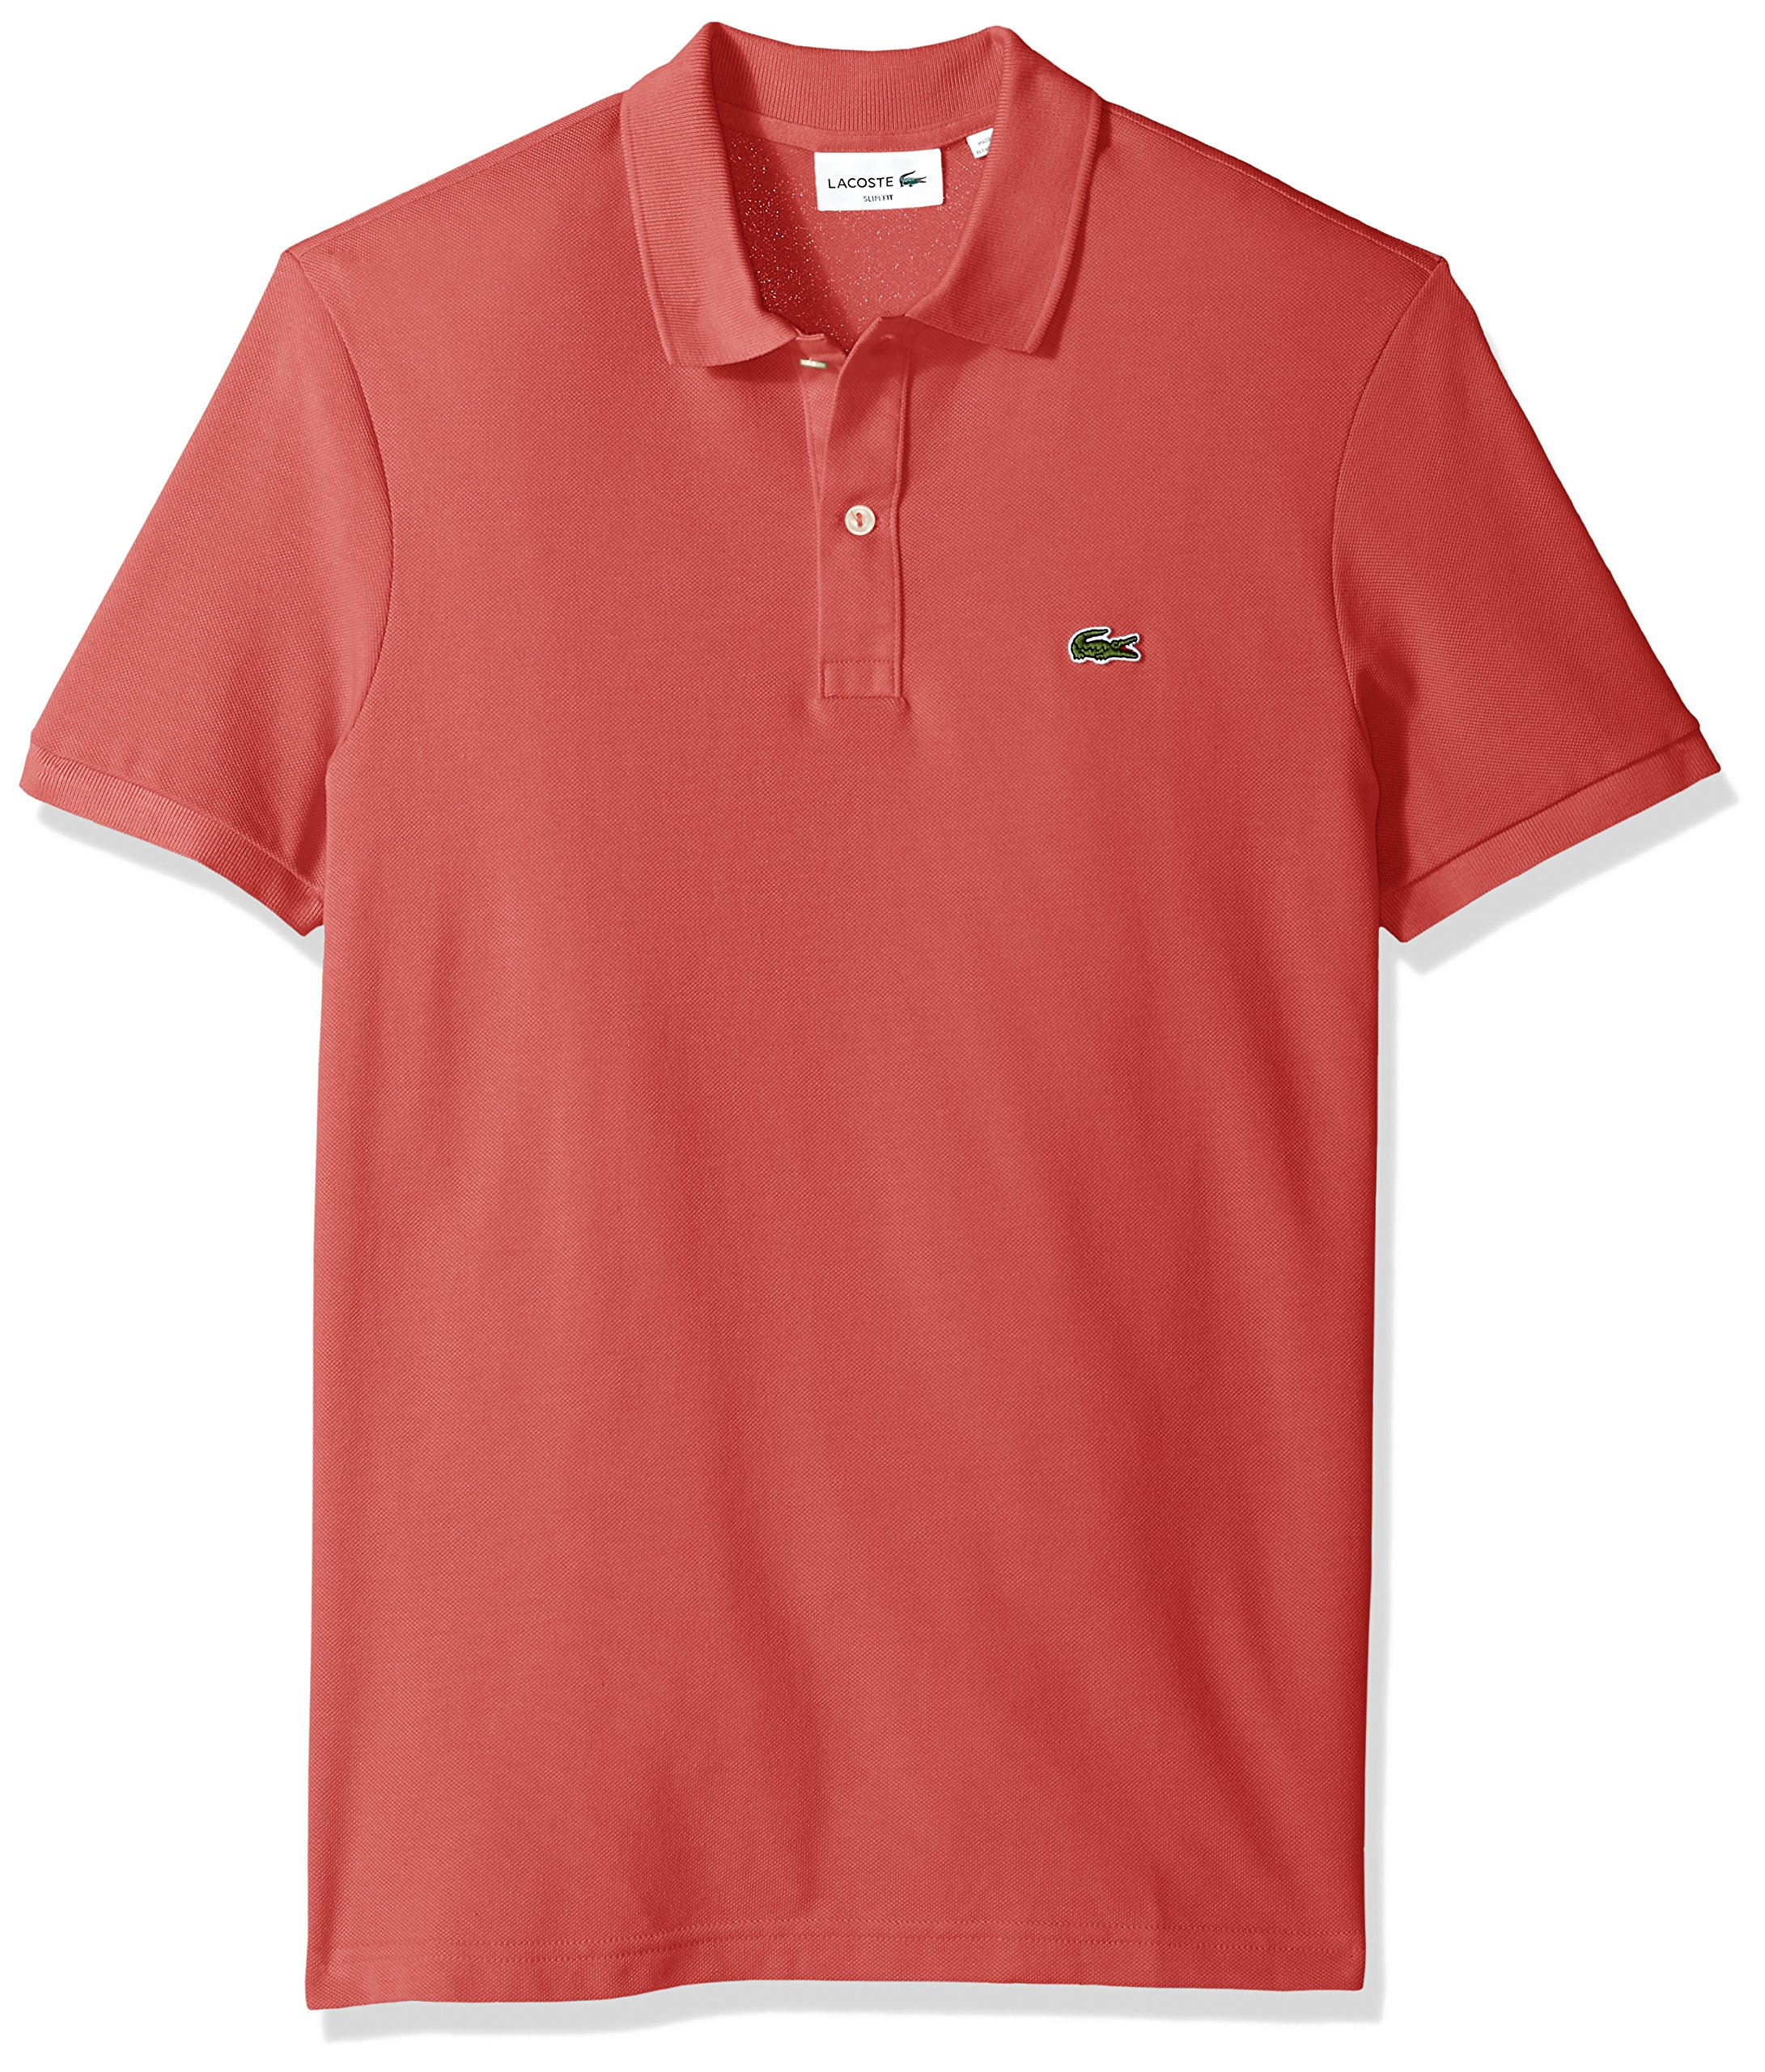 19e0119dd Galleon - Lacoste Men s Petit Piqué Slim Fit Polo Shirt